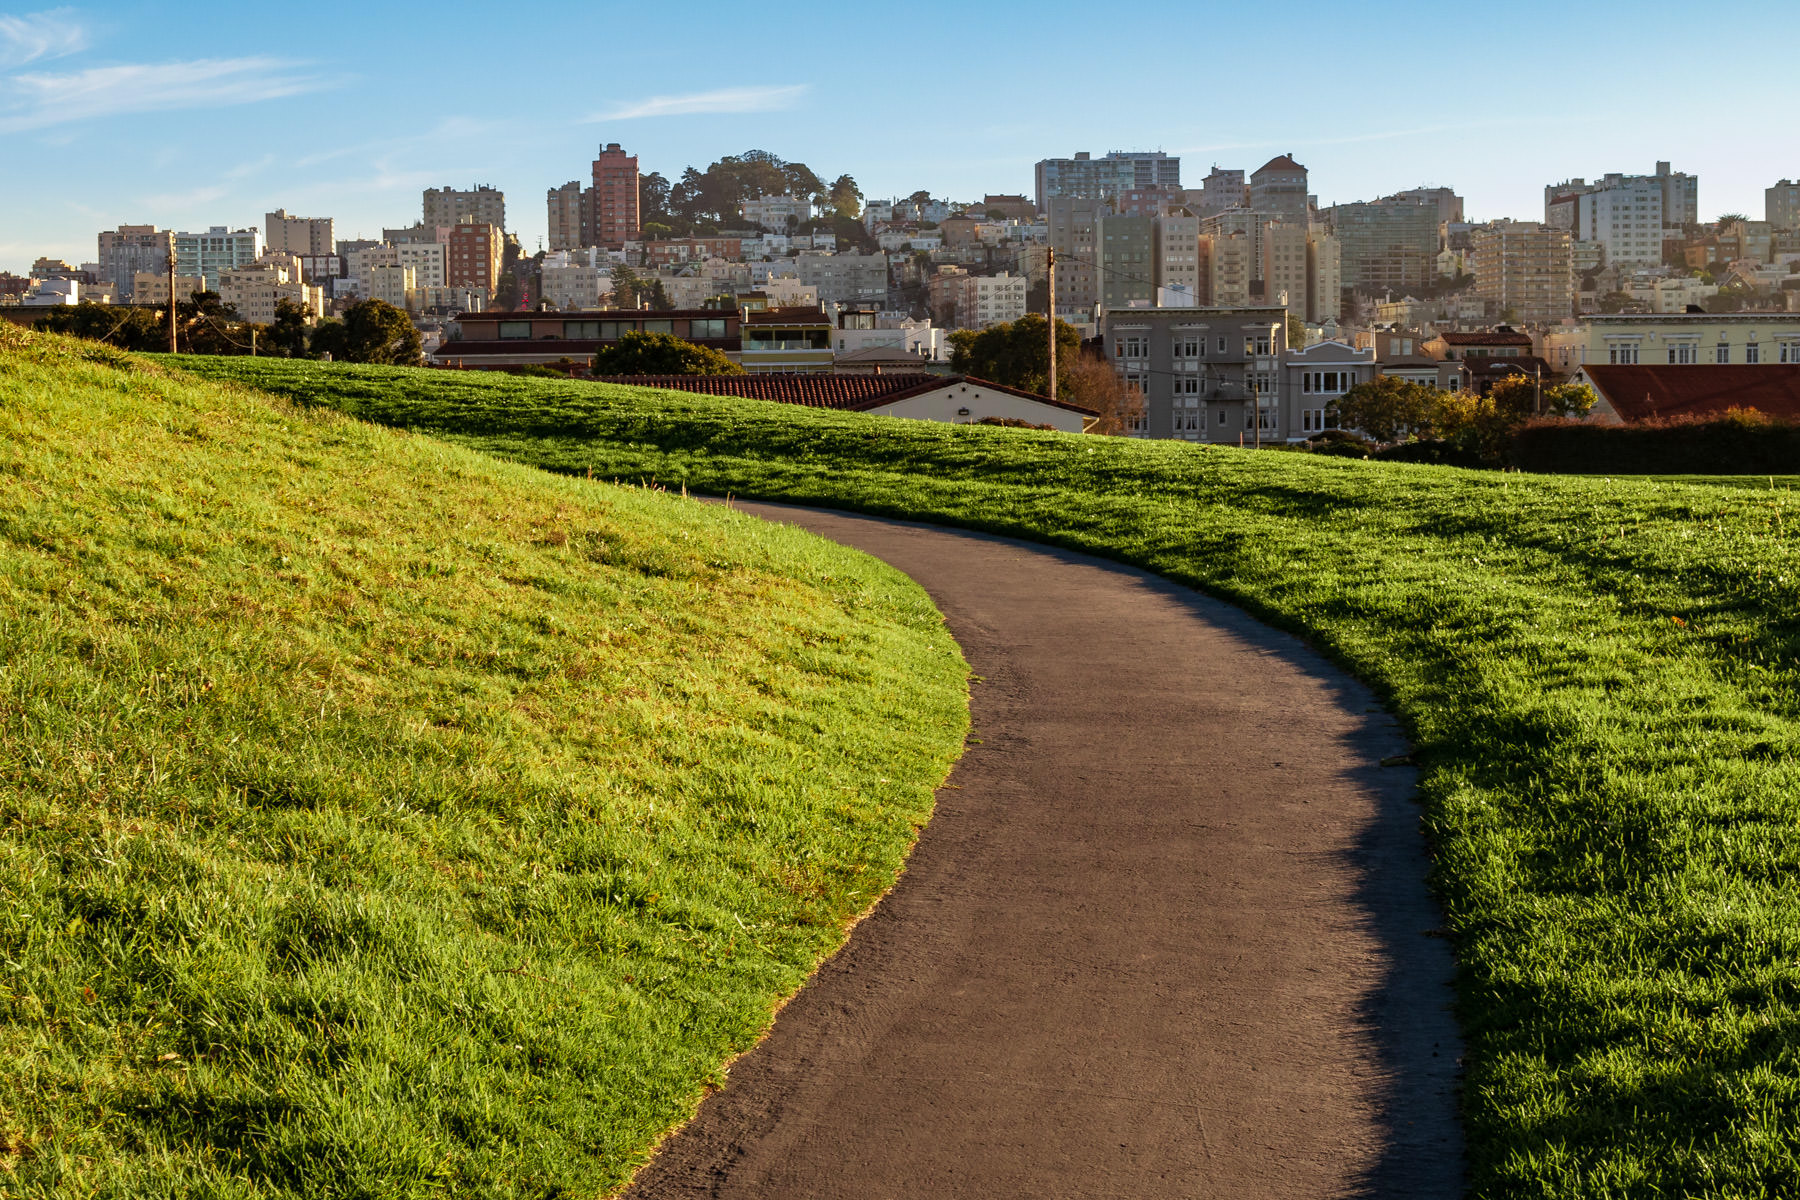 A path crests a hill in the Great Meadow at Fort Mason as the late afternoon sun begins to set on San Francisco.